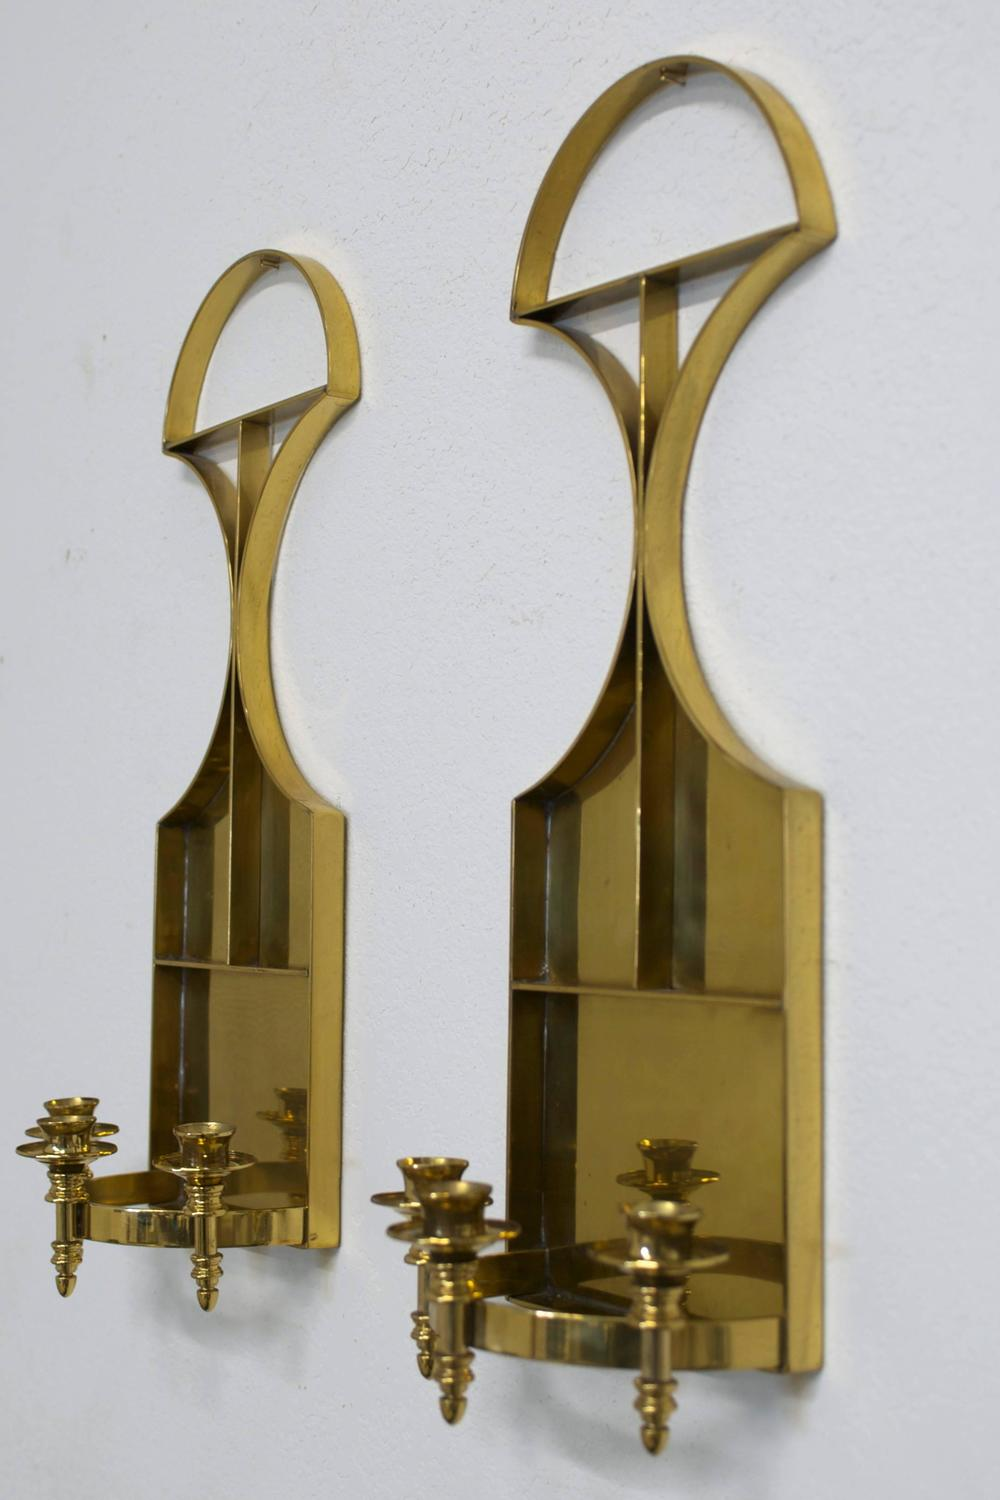 Solid Brass Wall Sconces : Pair of Solid Brass Mid-Century Candle Wall Sconces For Sale at 1stdibs